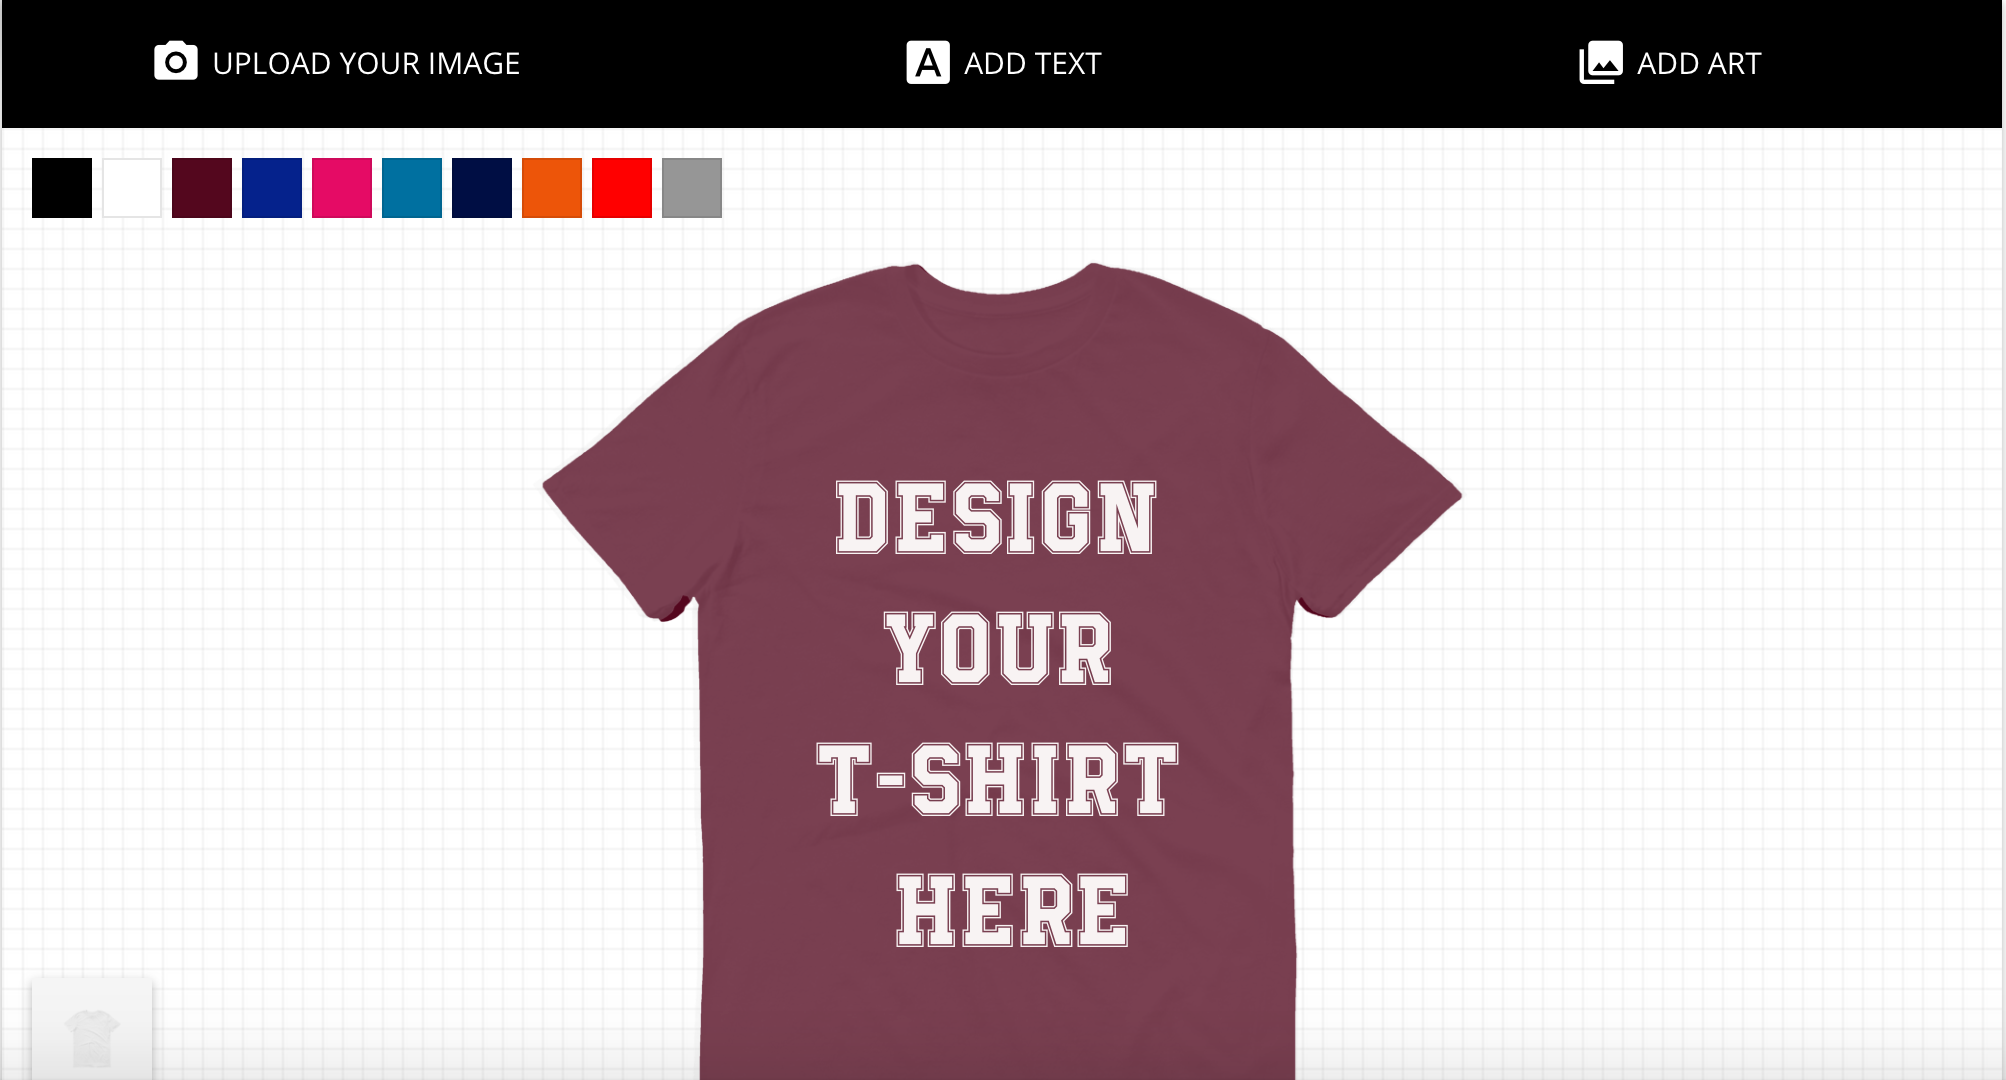 Design t shirt online singapore - Design Your T Shirts For Free 3000 Clip Arts And Fonts Provided